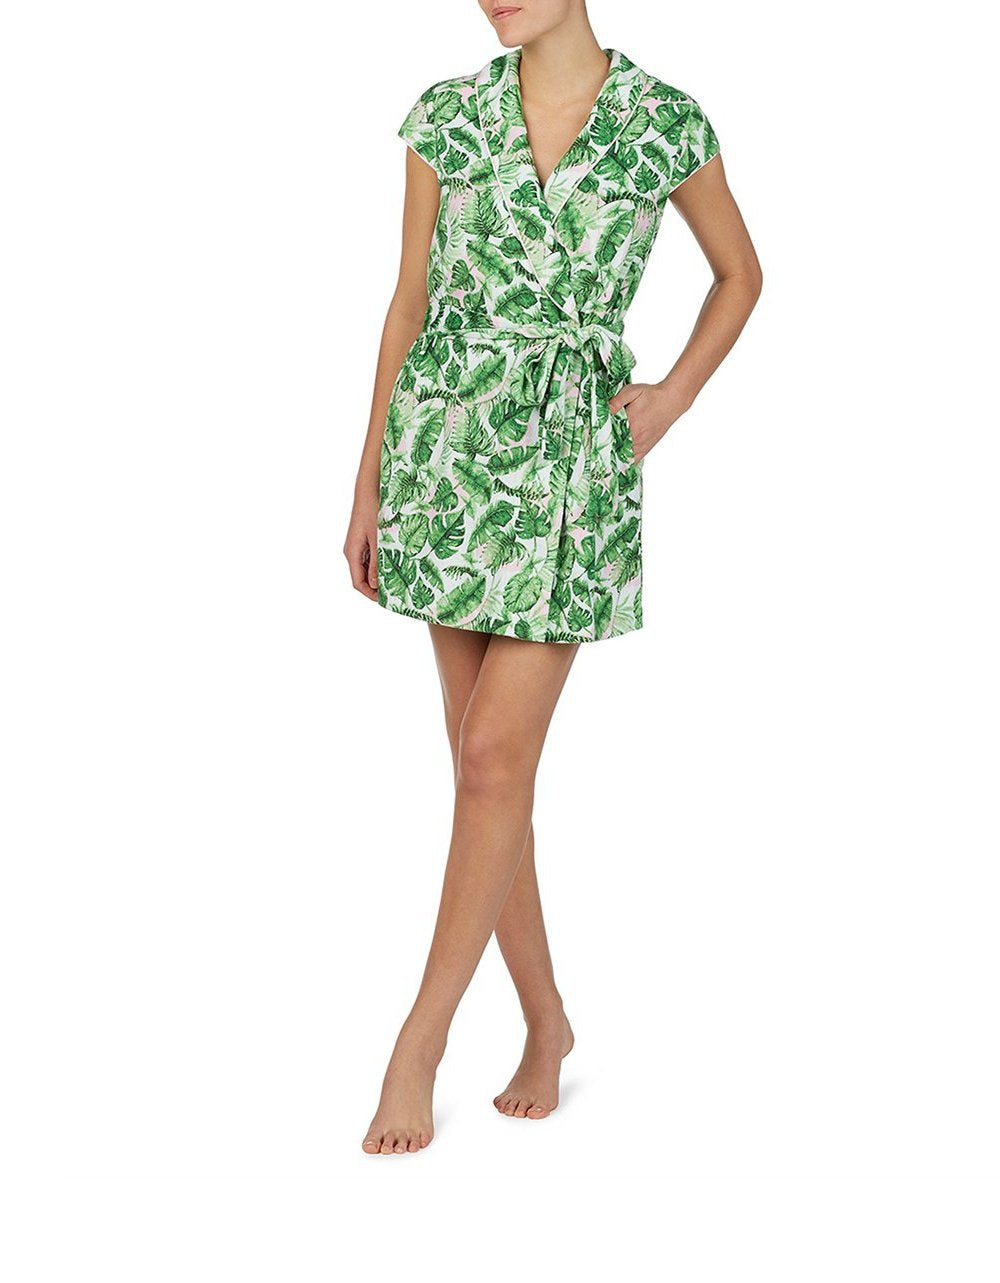 POOLSIDE GLAM ROBE GREEN - APPAREL - Betsey Johnson